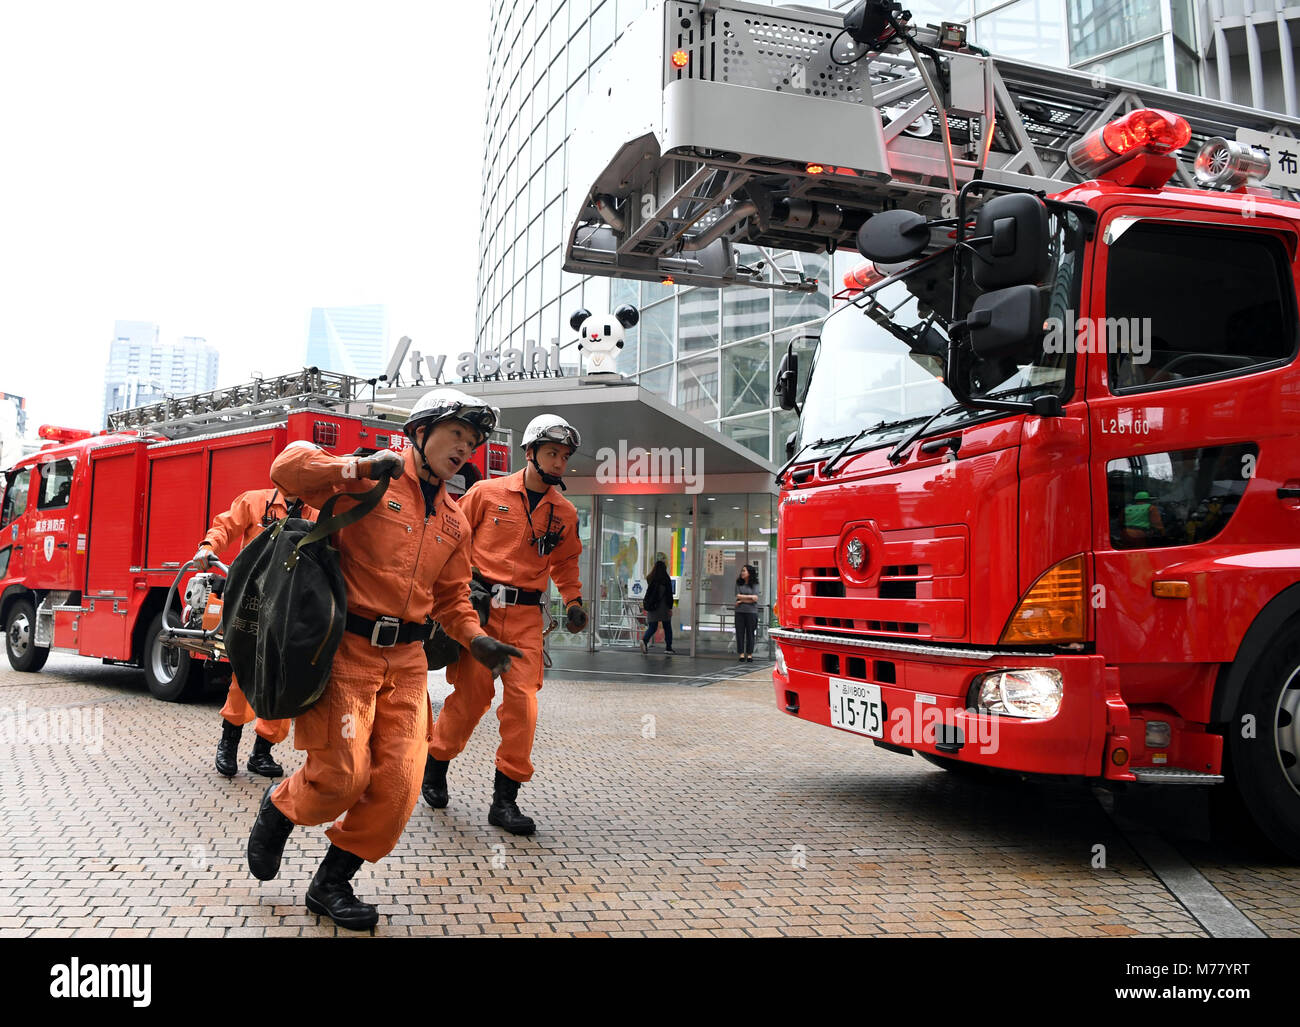 Tokyo, Japan. 9th Mar, 2018. Firefighters take part in a disaster drill in Tokyo, Japan, March 9, 2018. The drill - Stock Image